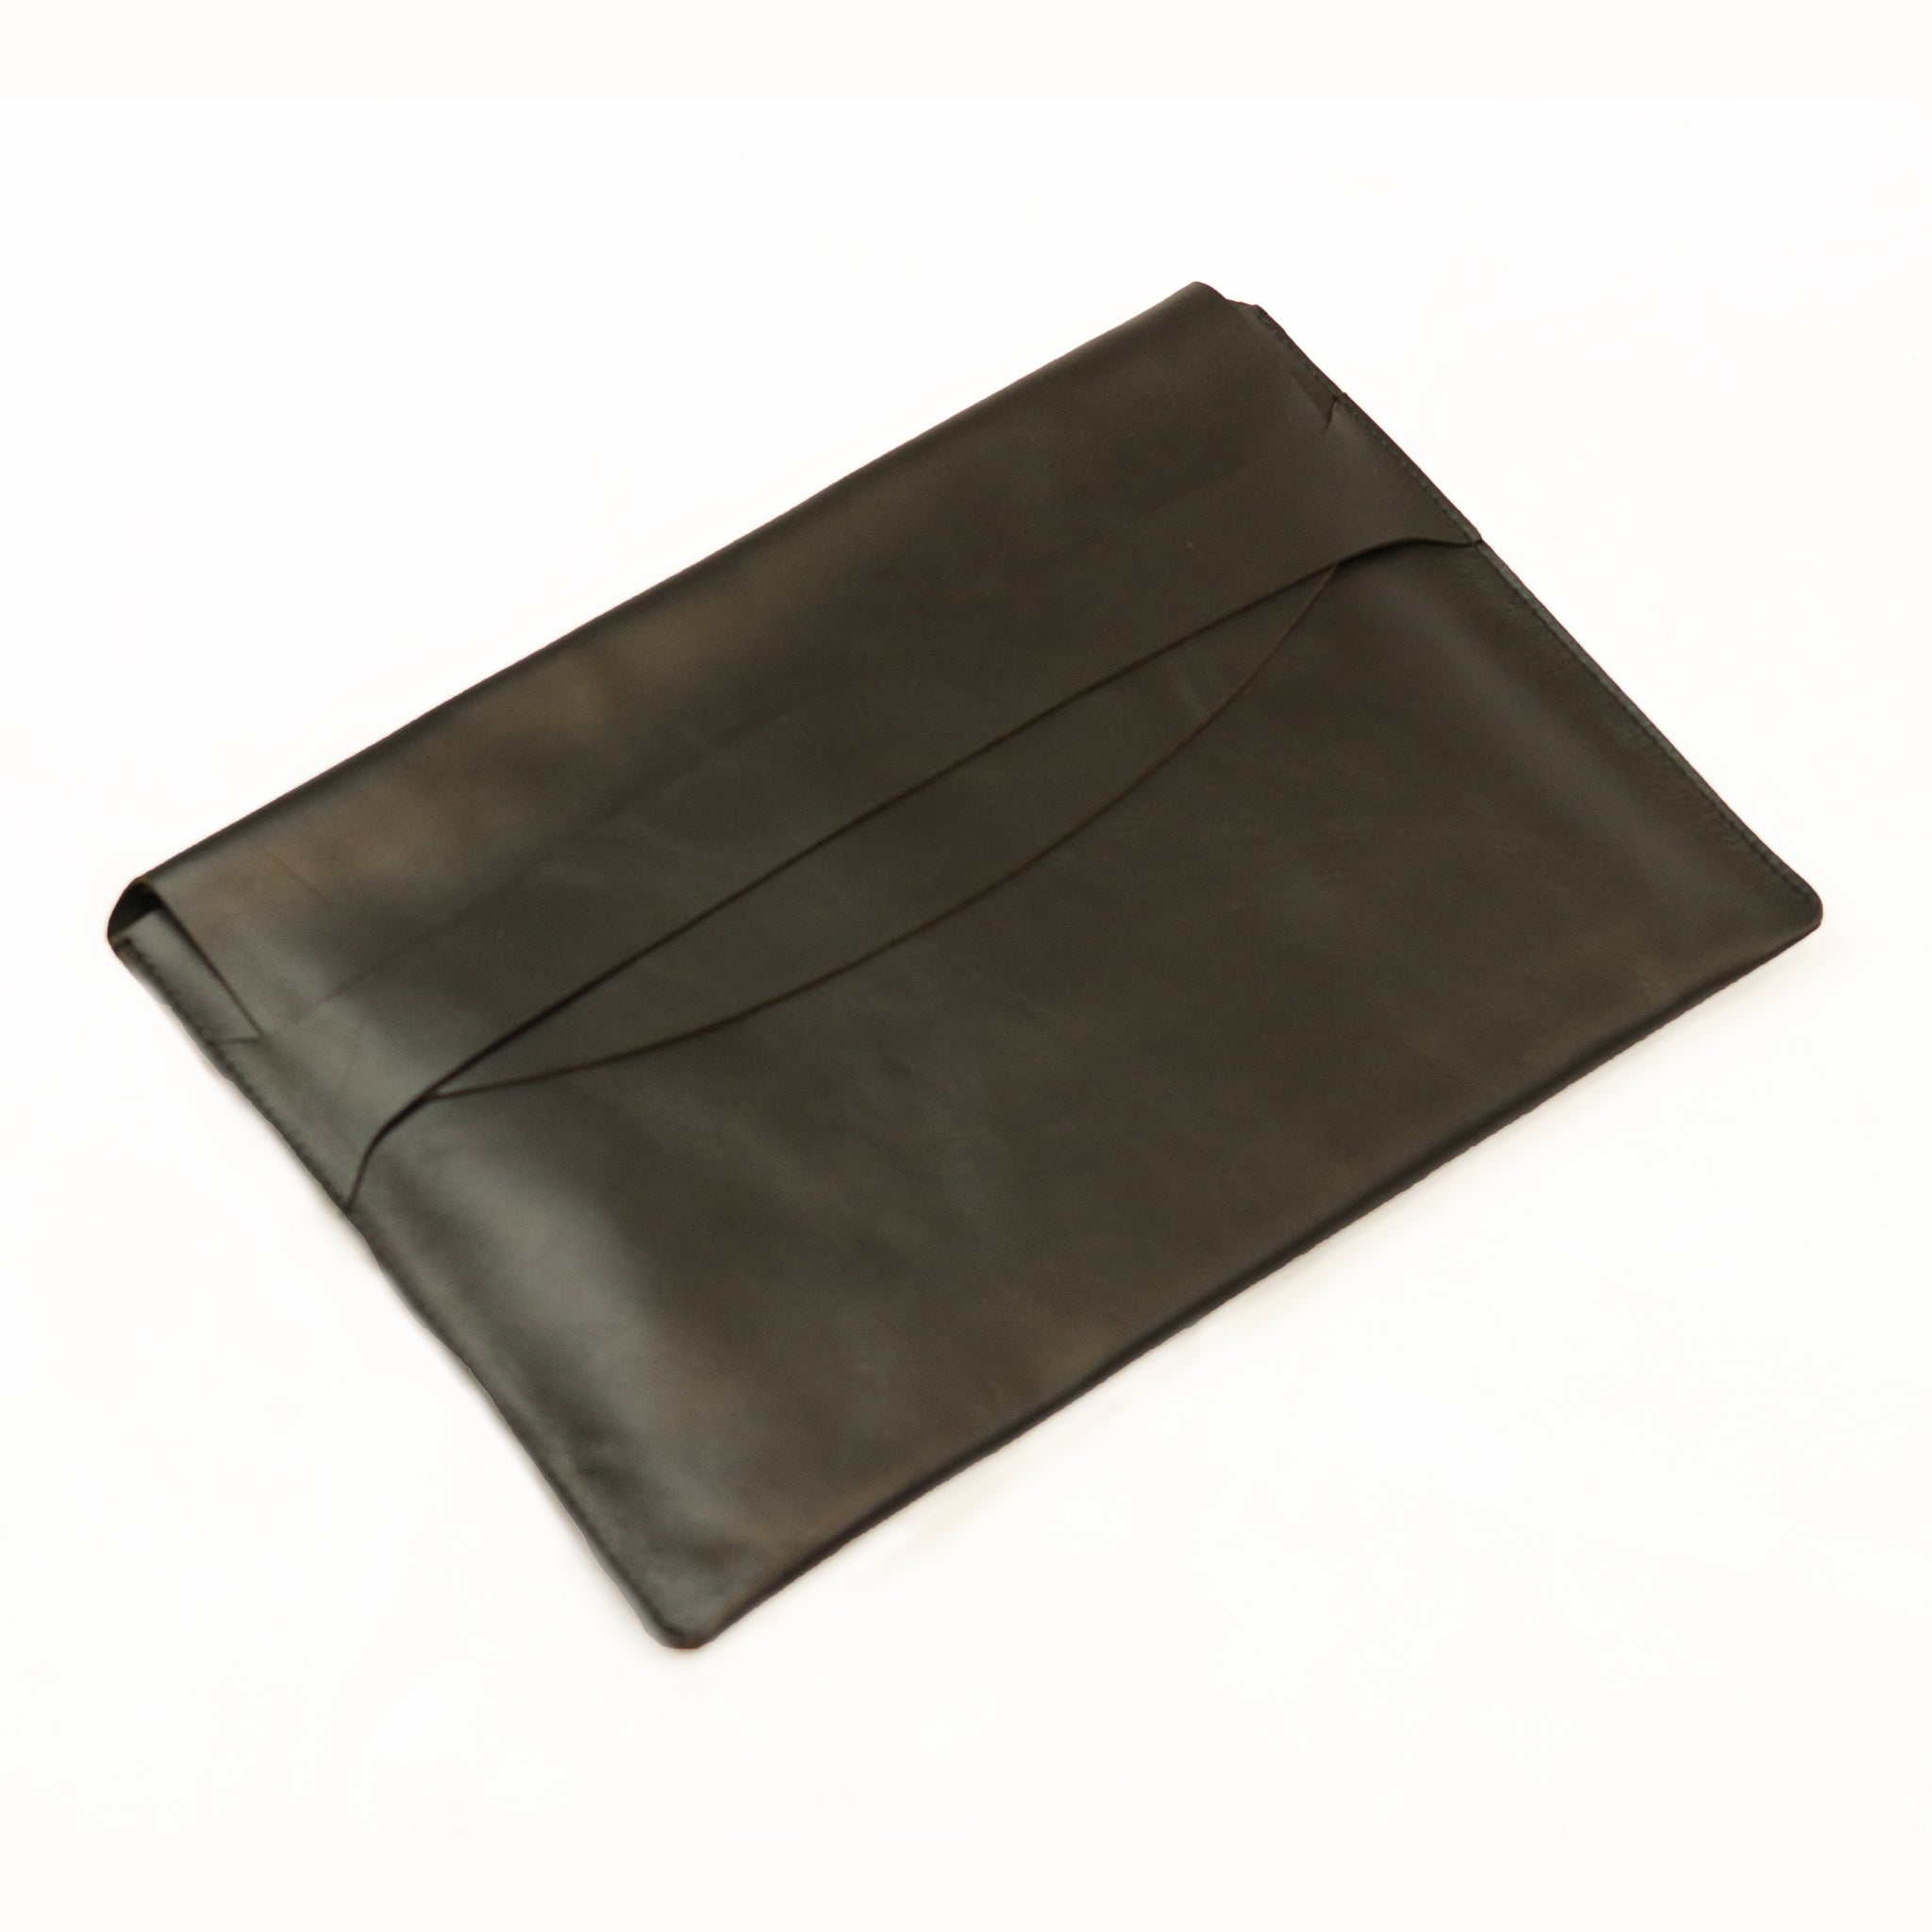 Leather Laptop Holder - Black - LeatherLately